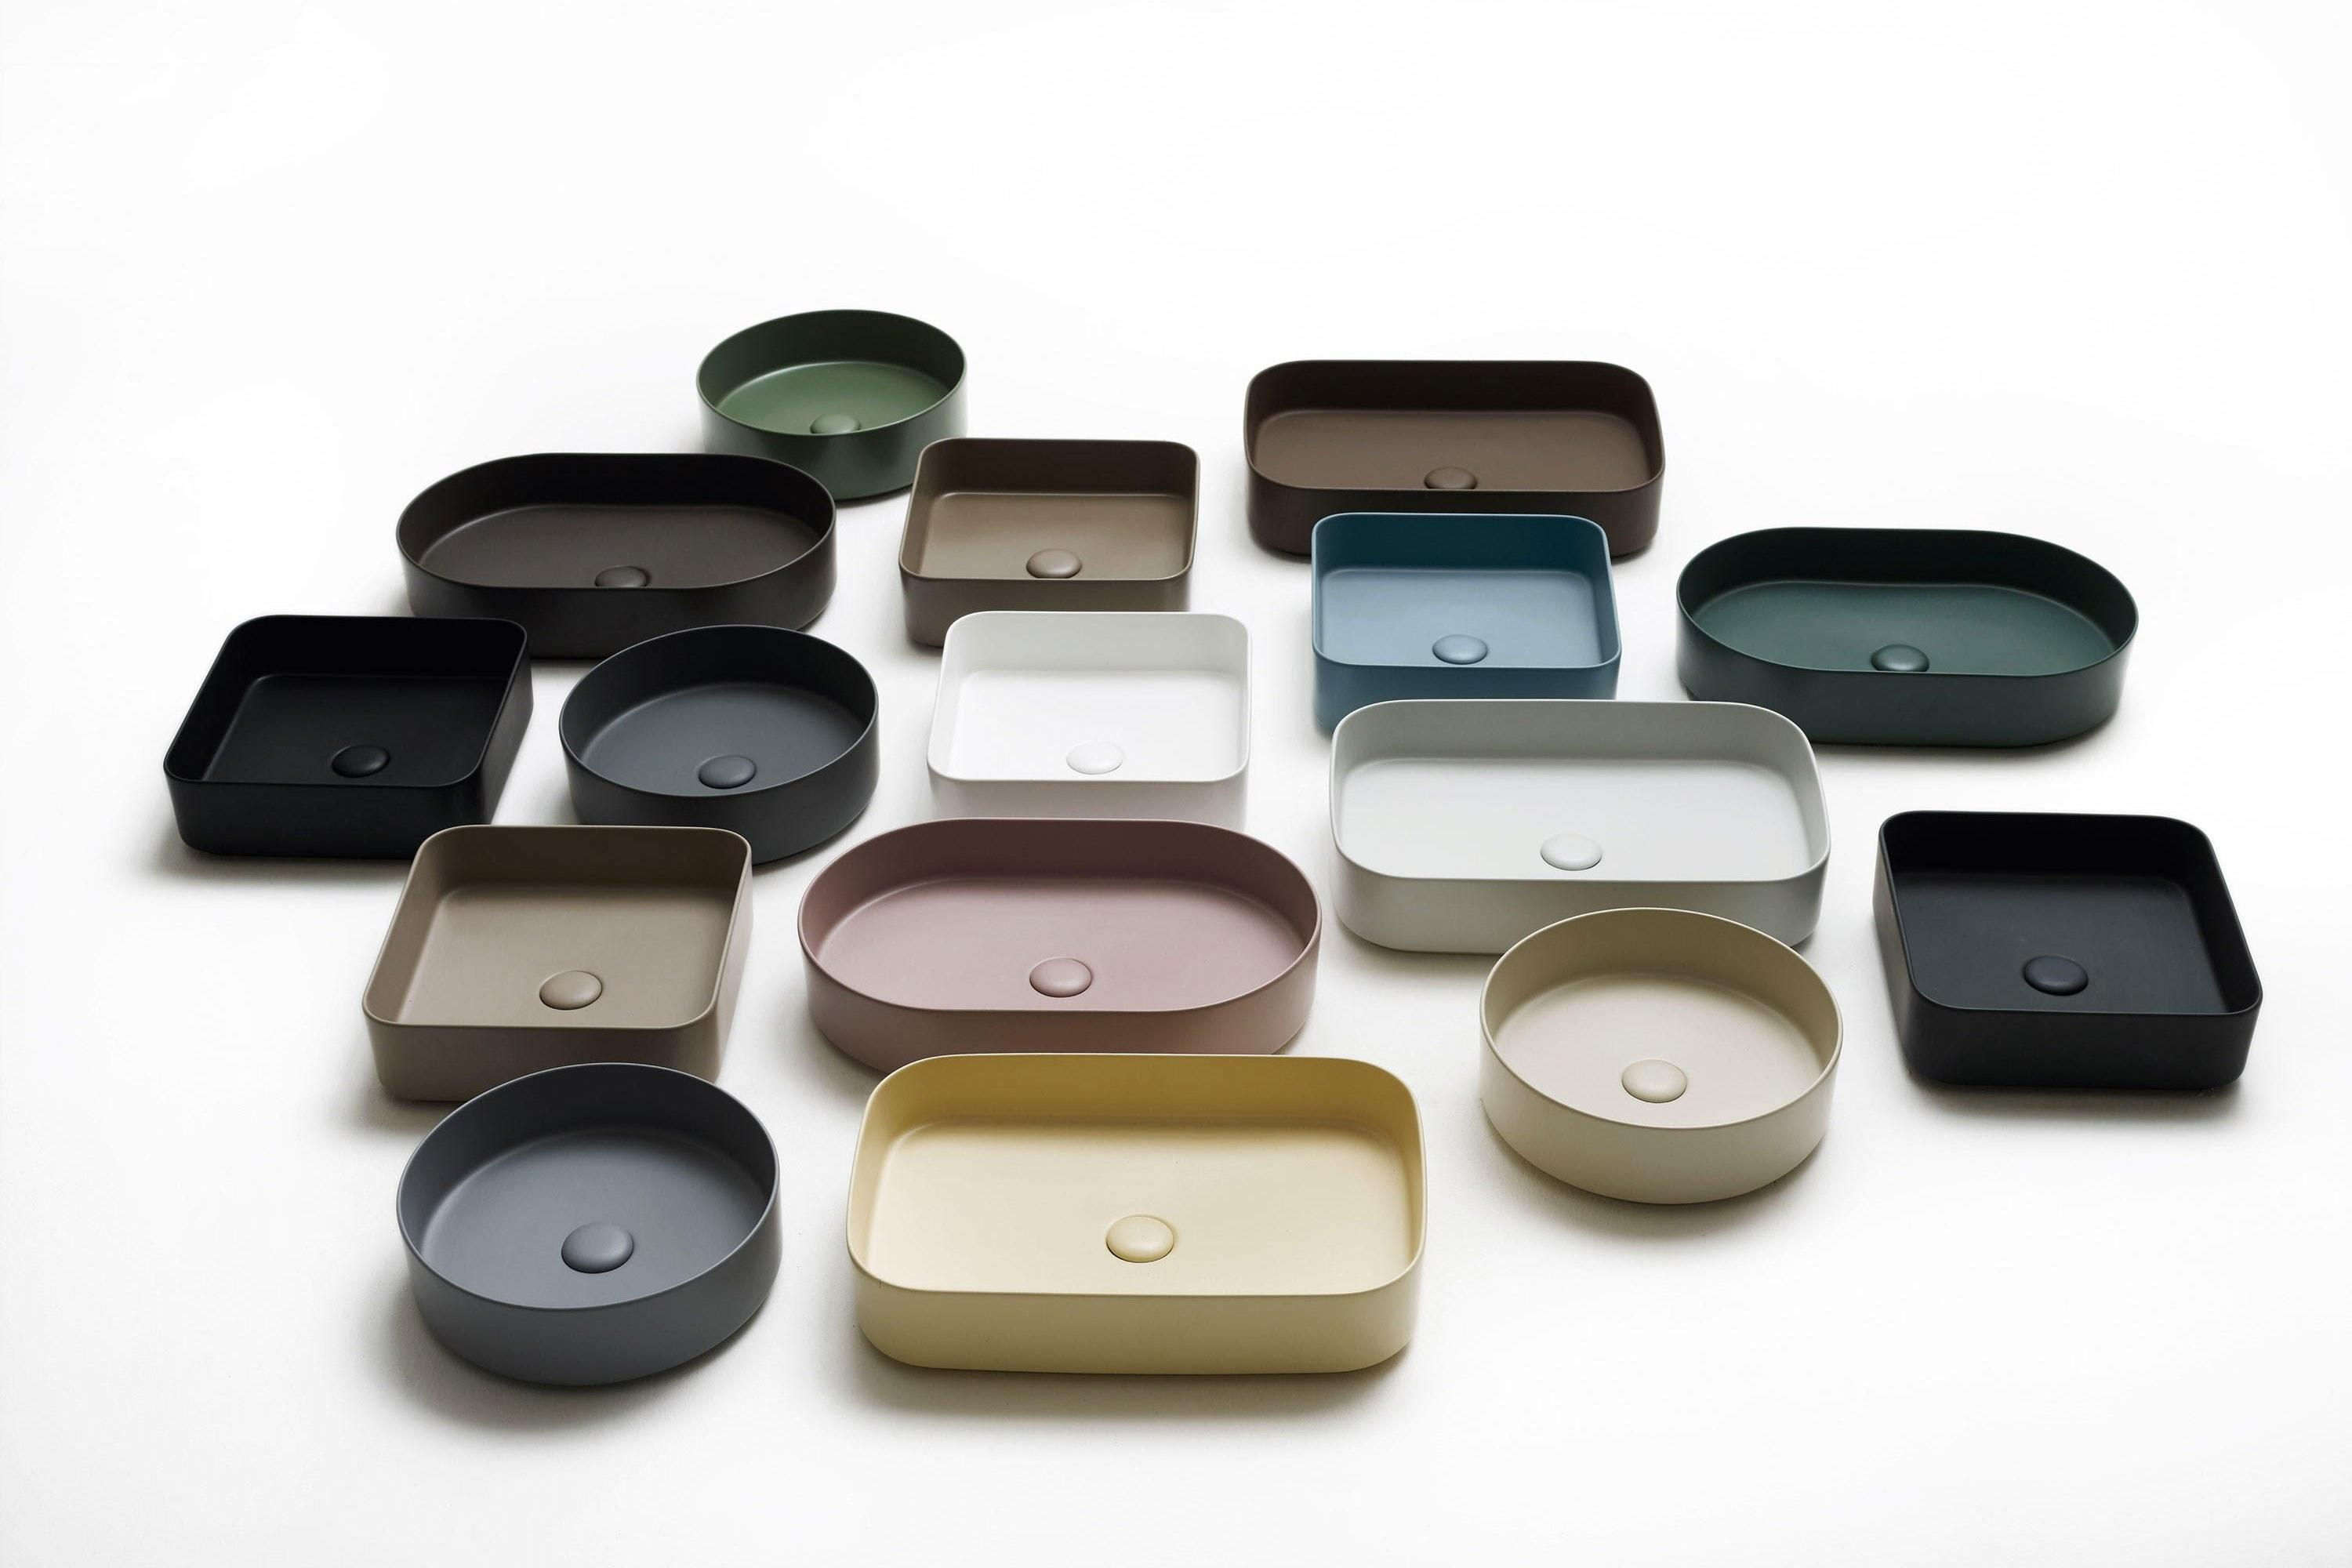 "Colorful basins are only the tip of the iceberg at Milan-based Ceramica Cielo—the company also sells freestanding vanities in bold hues, if you're interested. But we were drawn to the minimalist vibe of this collection, called <a href=""https://www.ceramicacielo.it/en/products/shui+comfort"" rel=""nofollow noopener"" target=""_blank"" data-ylk=""slk:Shui Comfort"" class=""link rapid-noclick-resp"">Shui Comfort</a>, which features ""the world's thinnest ceramic"" in elegant, matte shades. Good news: Cielo's New York flagship opens this summer. In the meantime, purchase a Cielo sink through Miami-based Disegno Agency by emailing info@disegno-agency.com. SHOP NOW: Shui Comfort Ceramic Washbasin by Ceramica Cielo, from $1,400"